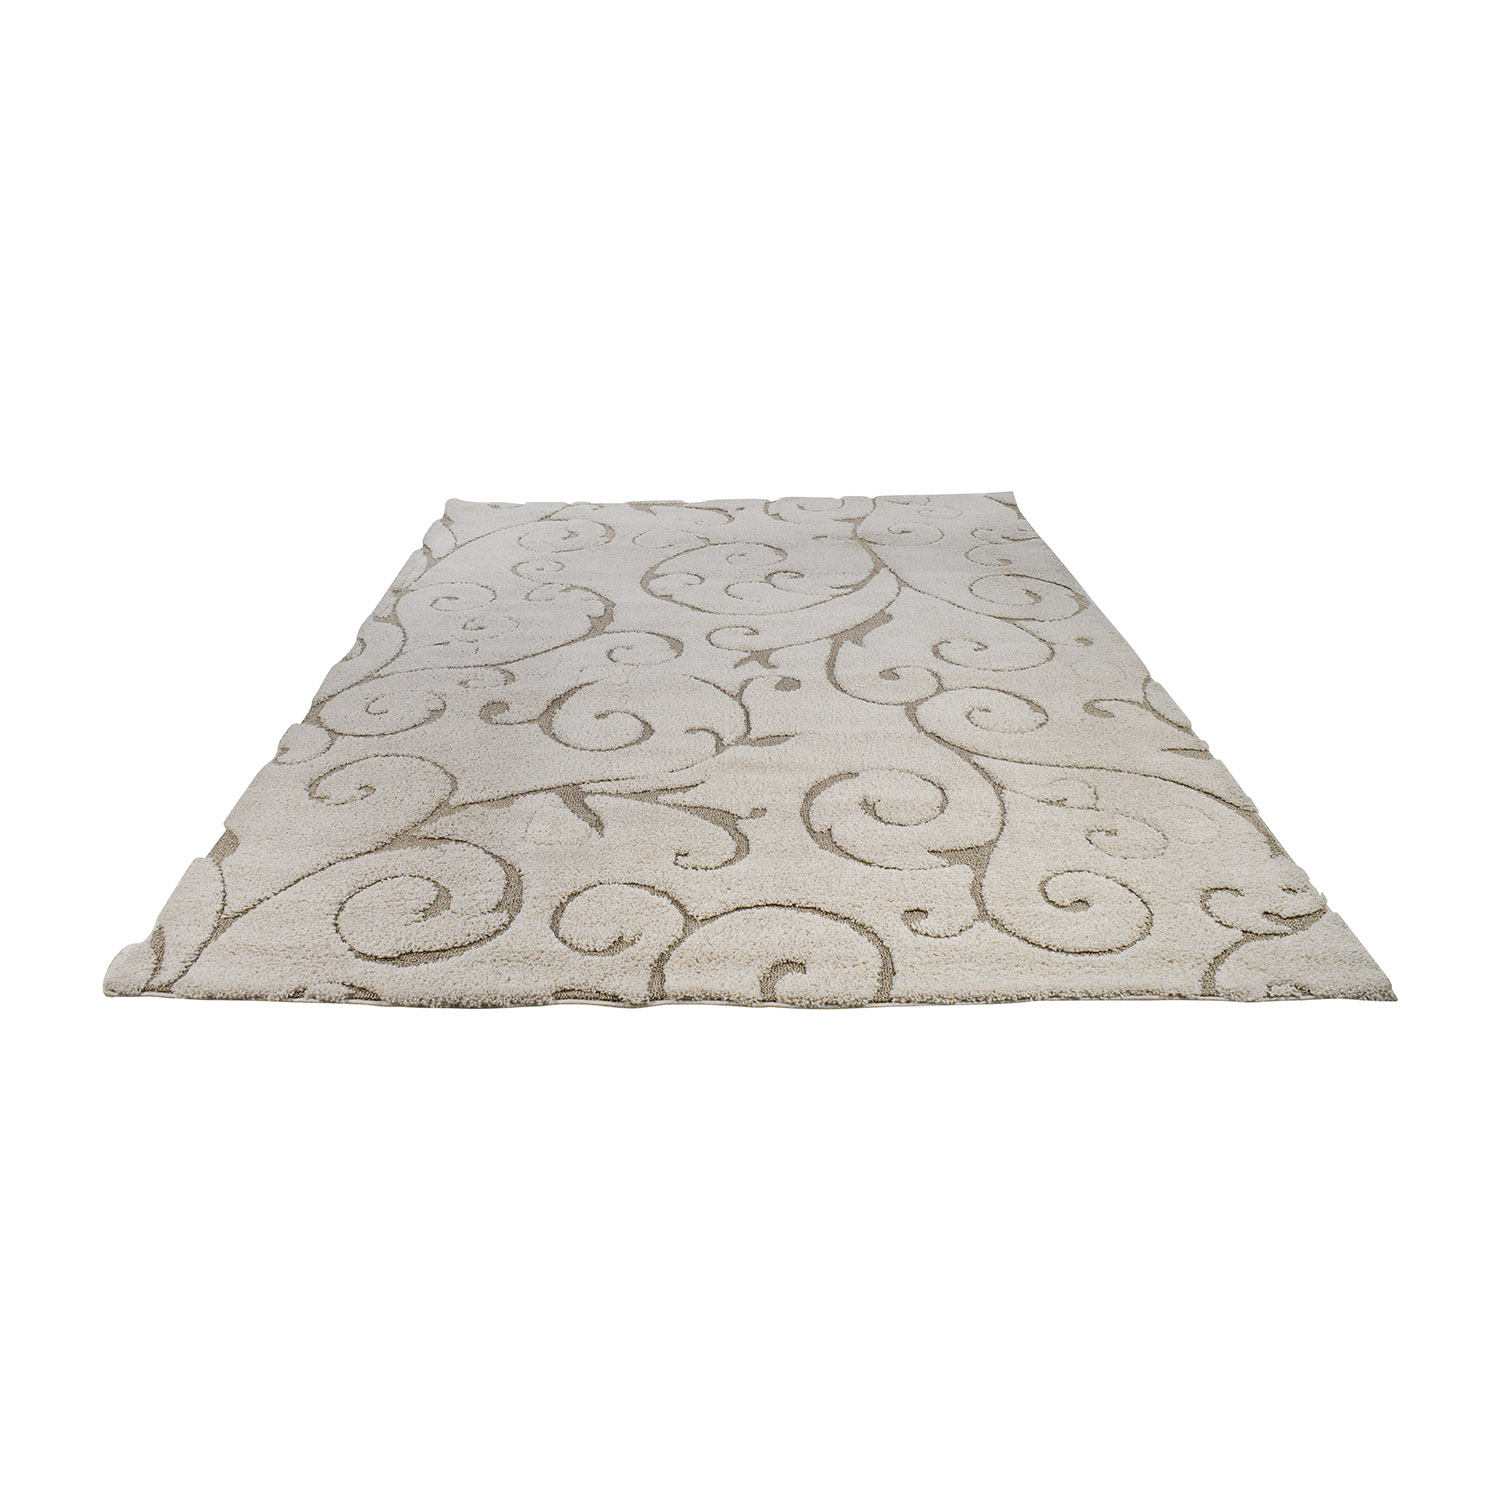 buy Safavieh Florida Shag Rug Safavieh Decor